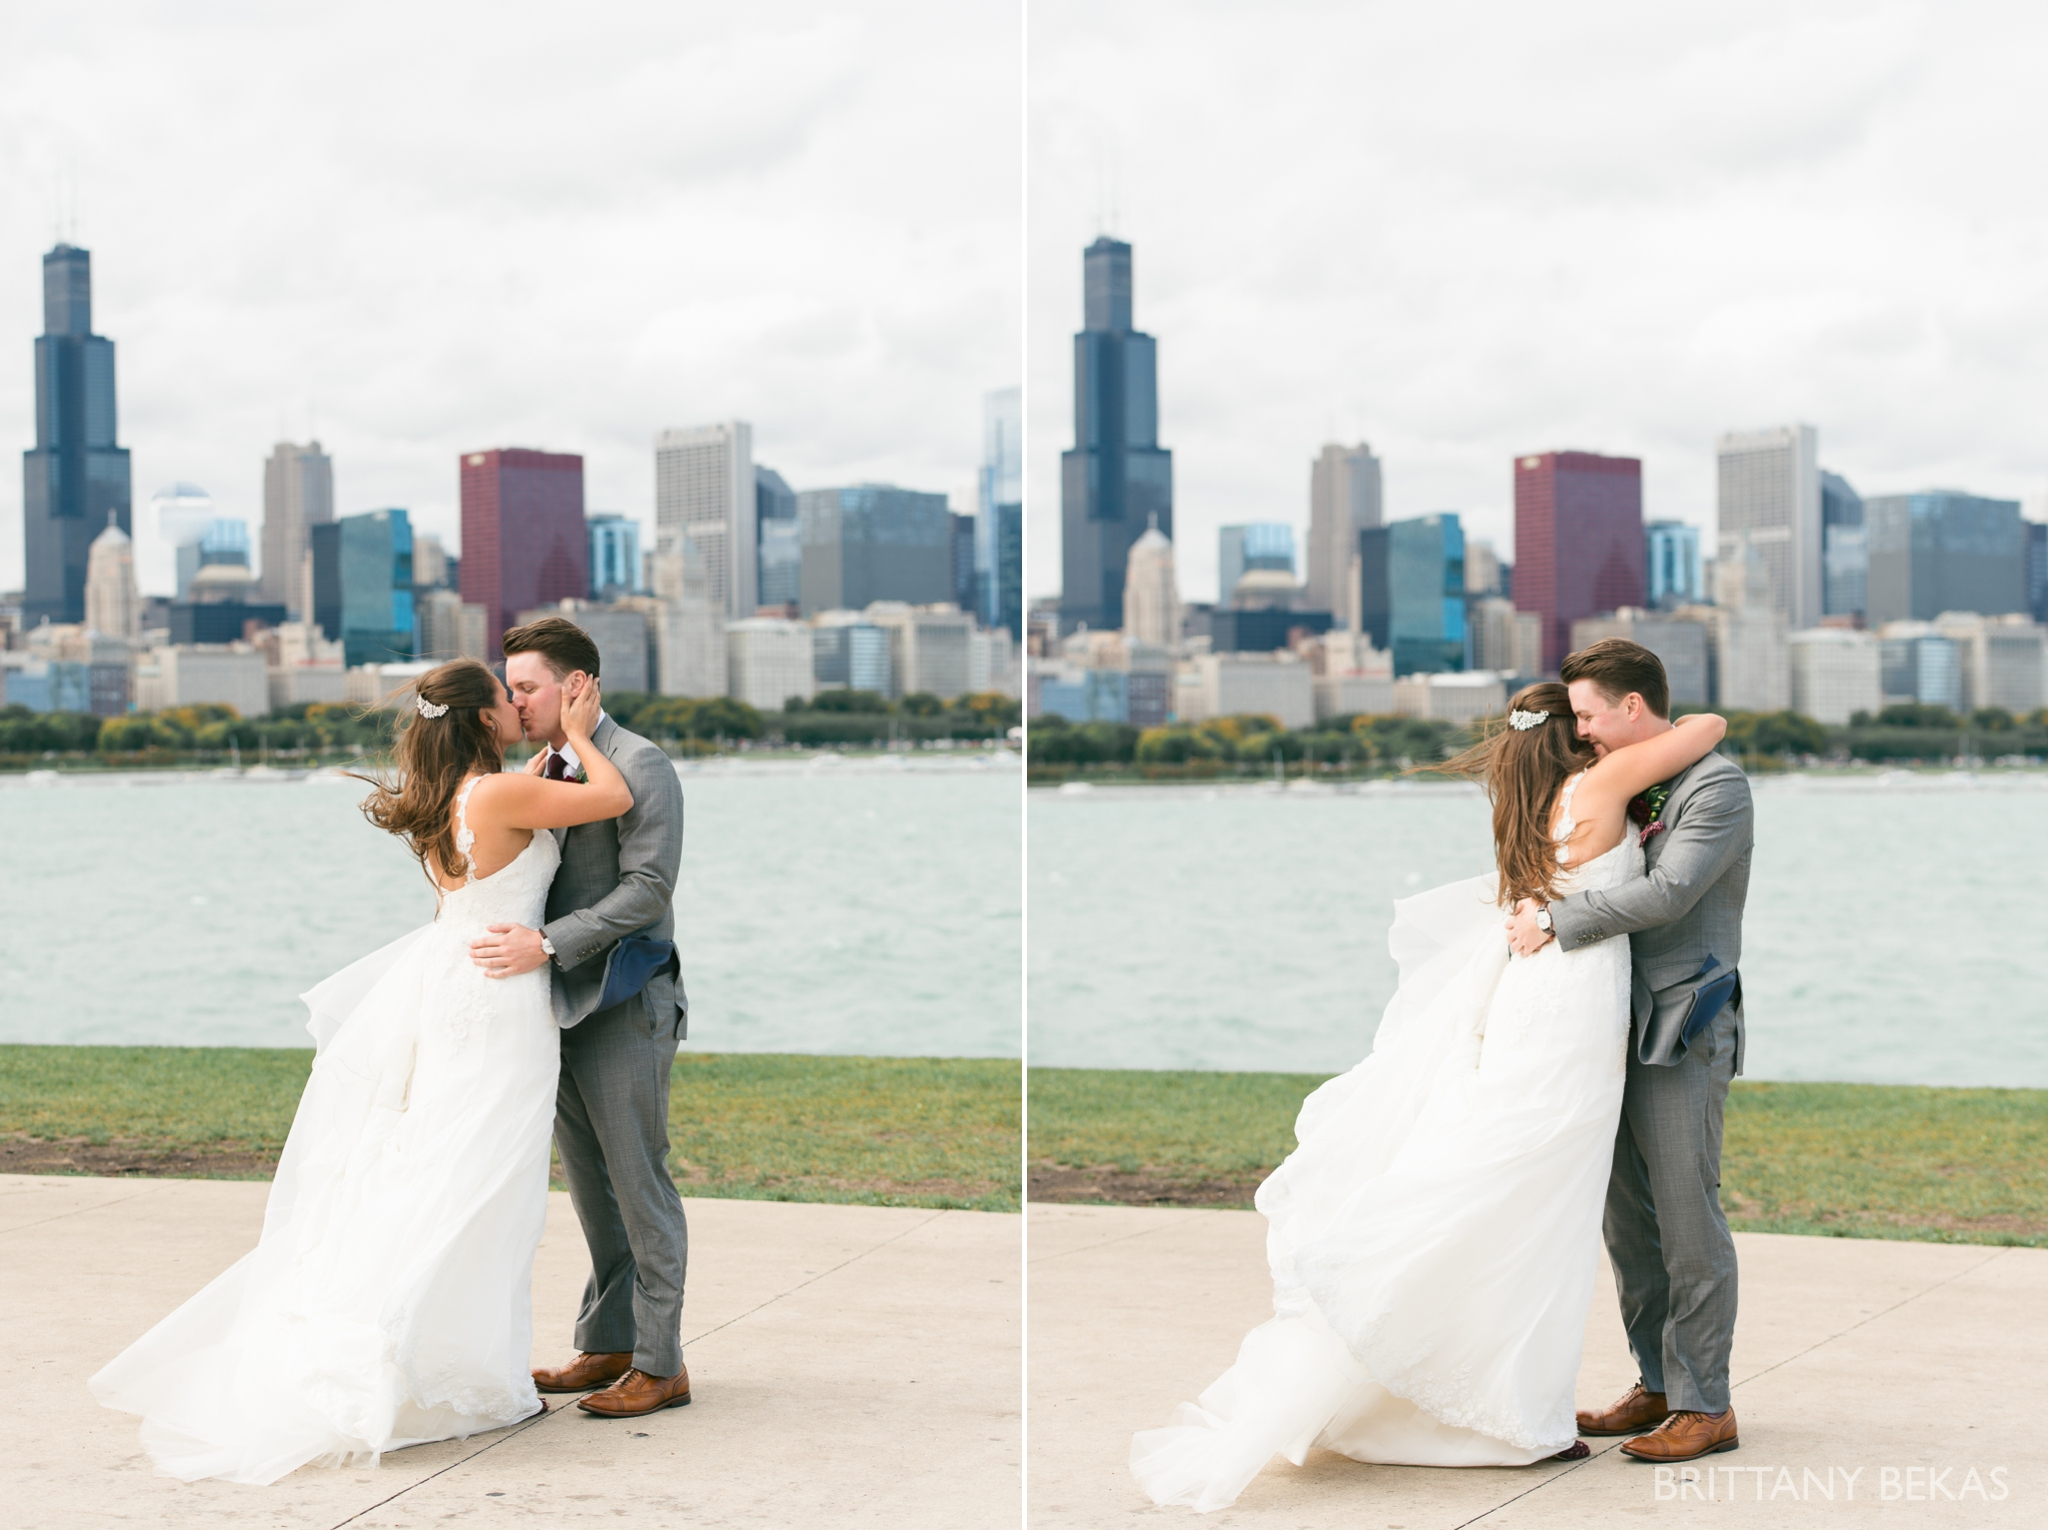 Chicago Wedding Garfield Park Conservatory Wedding Photos - Brittany Bekas Photography_0015